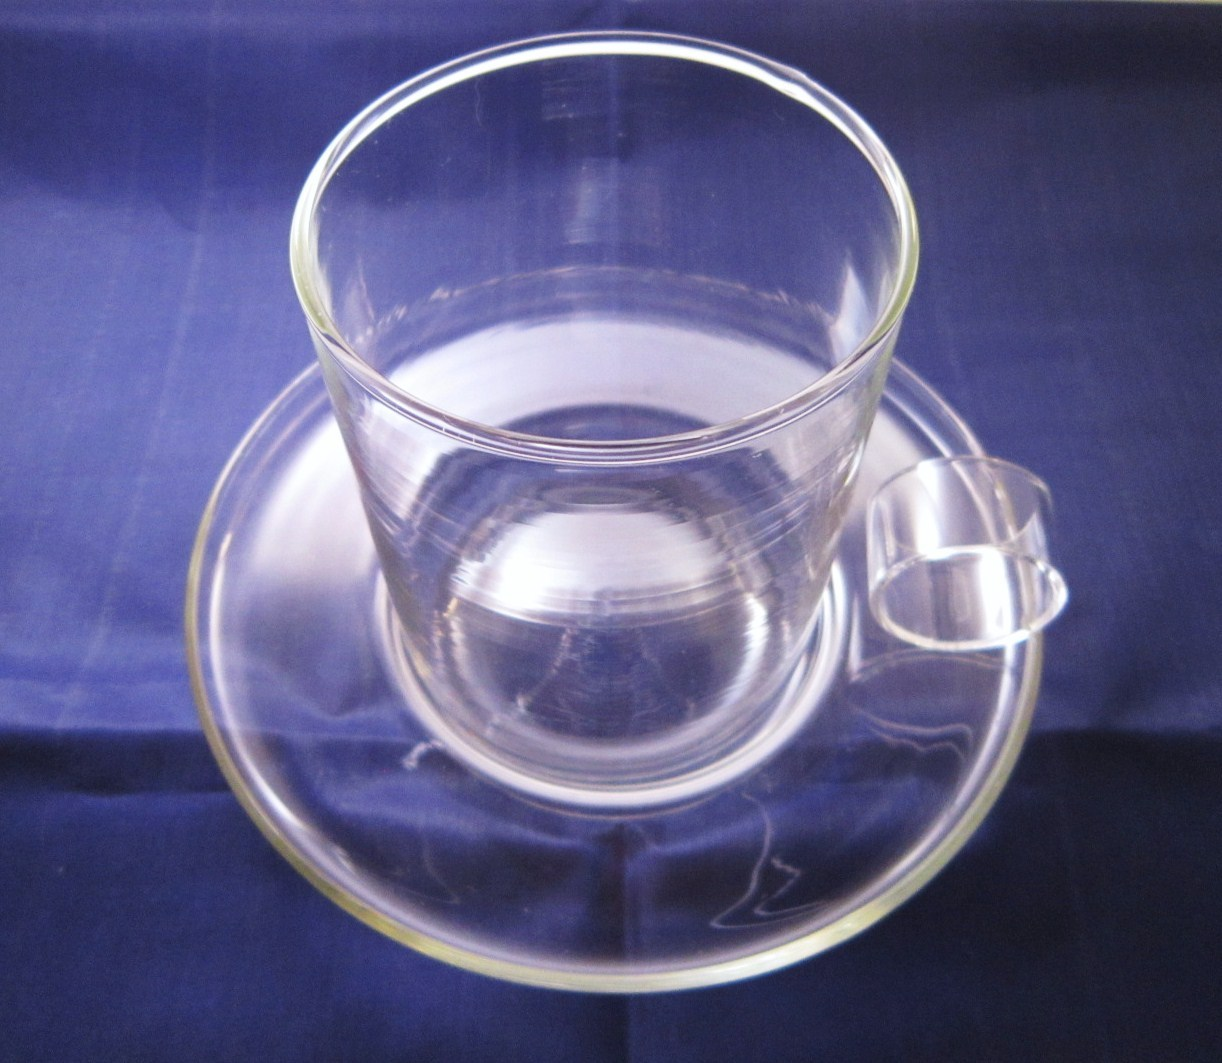 Un-Candle Set Jack Be Nimble Cup and Saucer 1970s made by Corning - $9.99